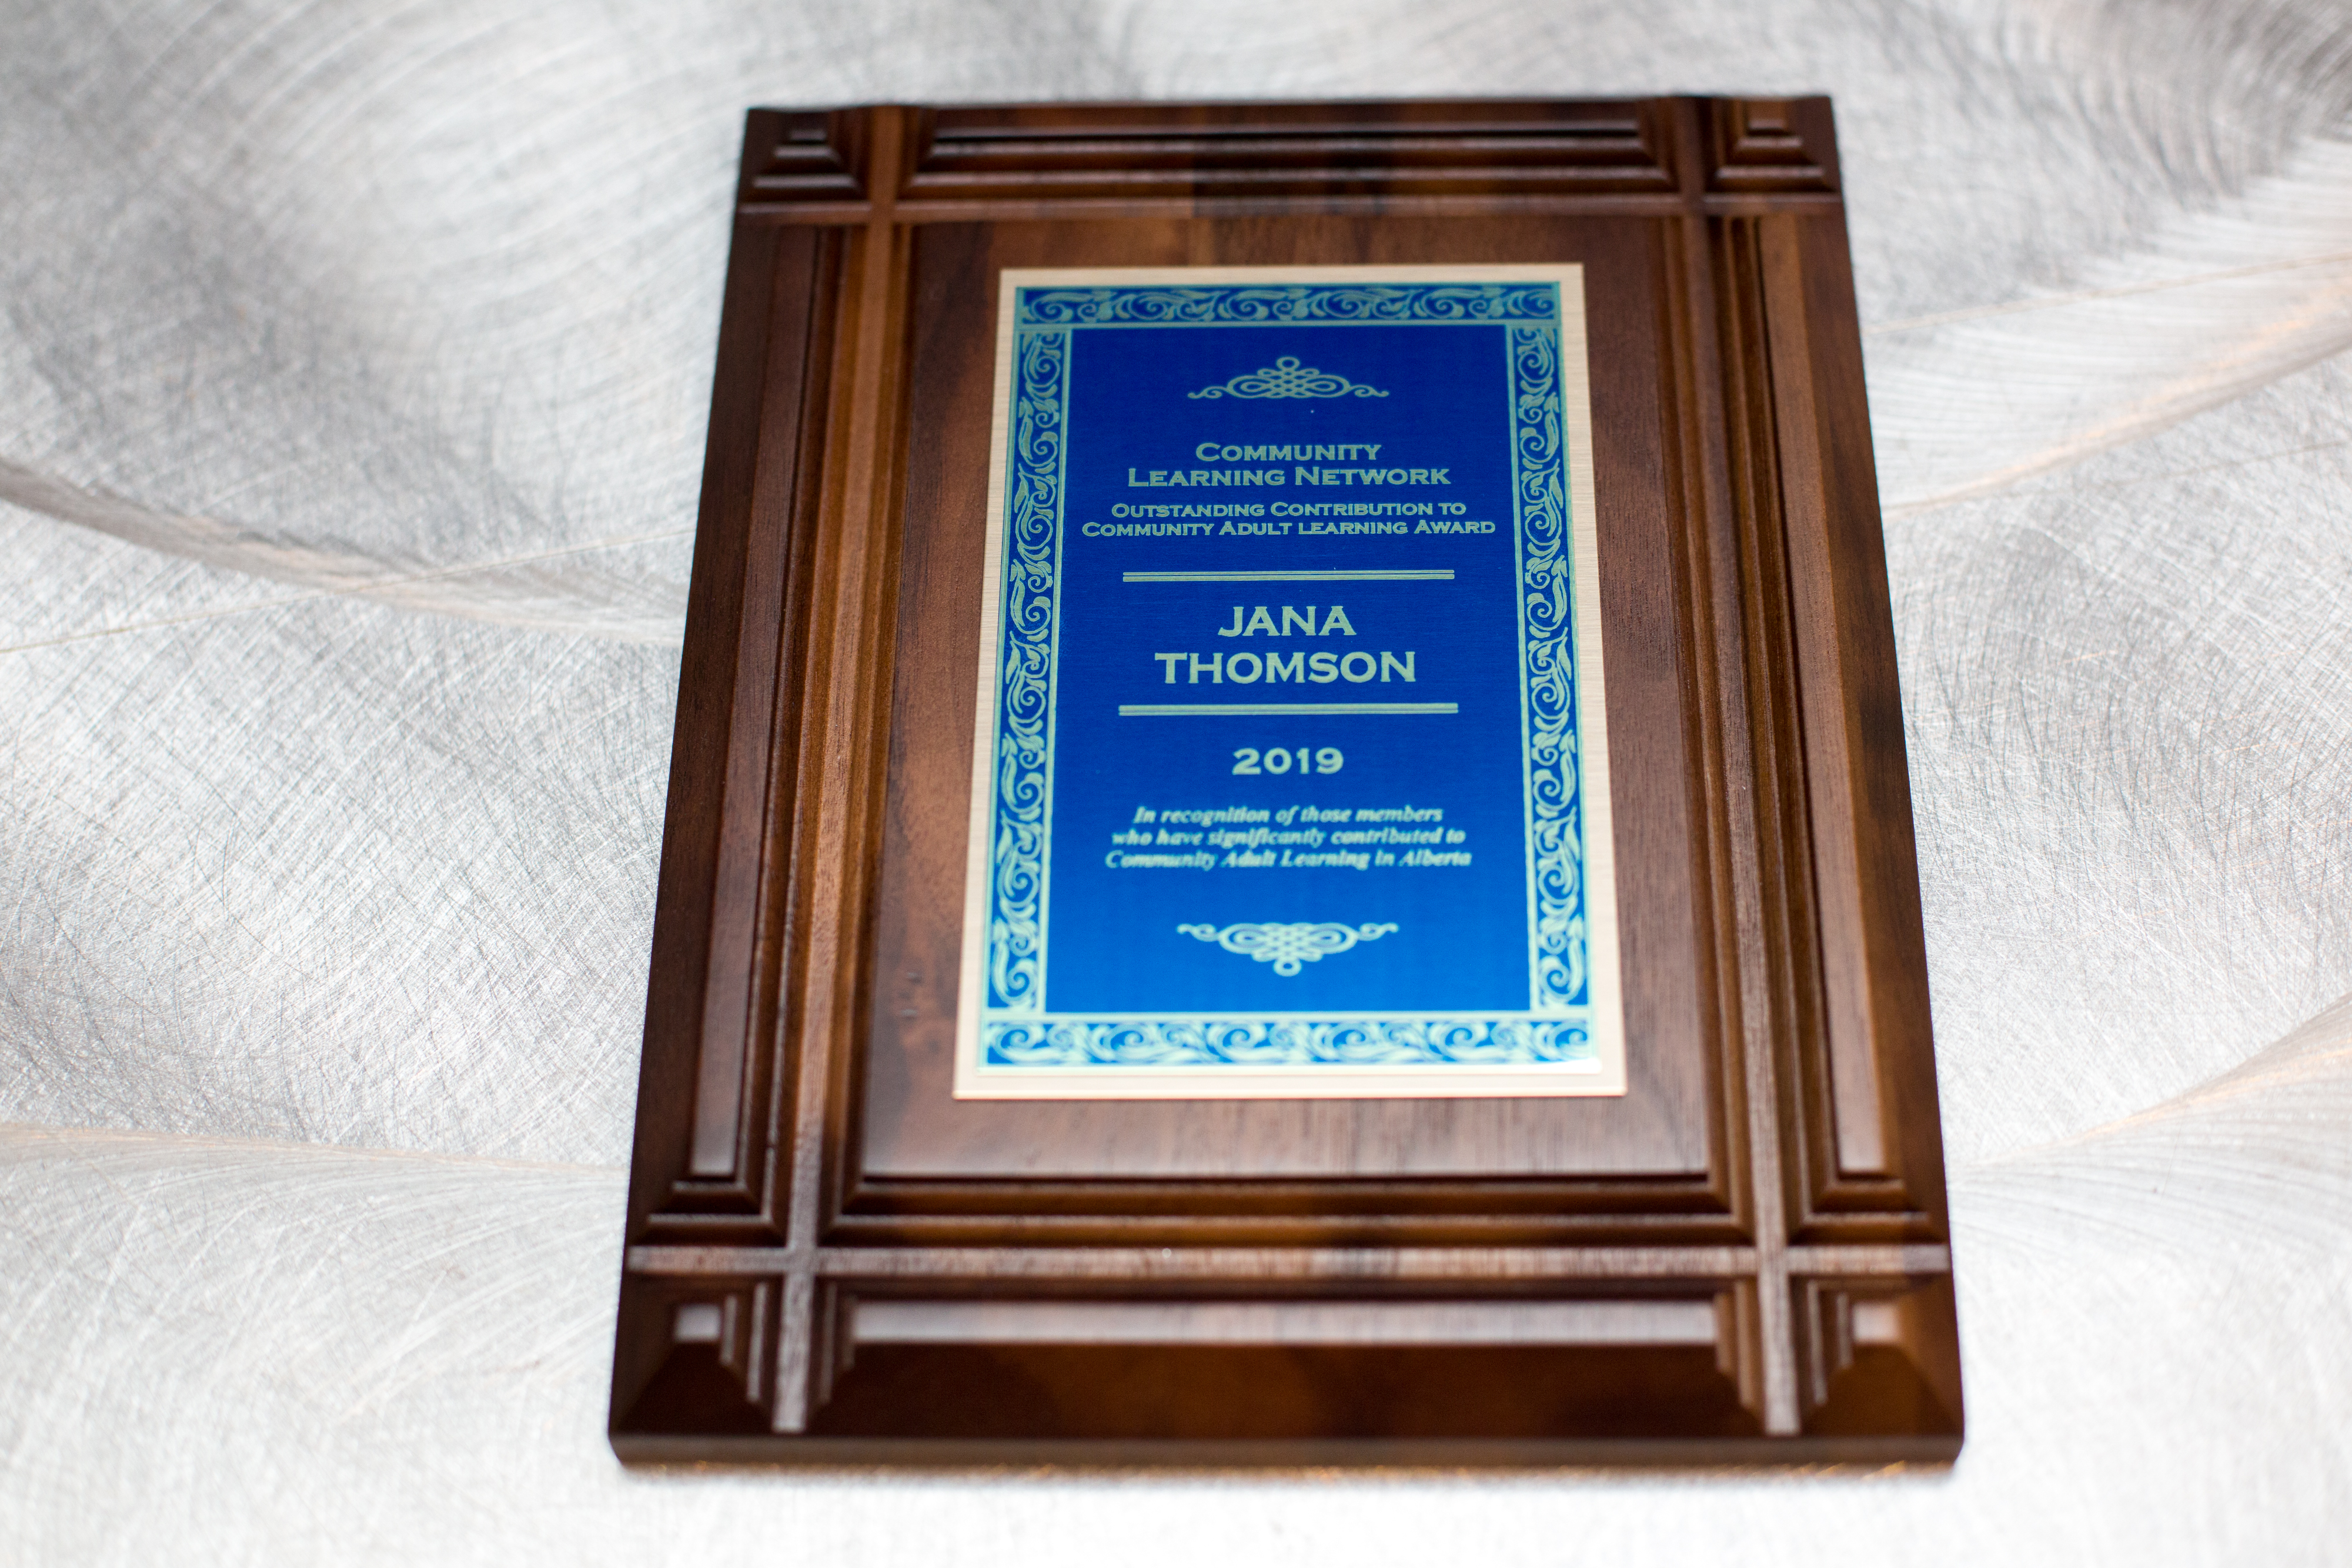 Outstanding Contribution Plaque